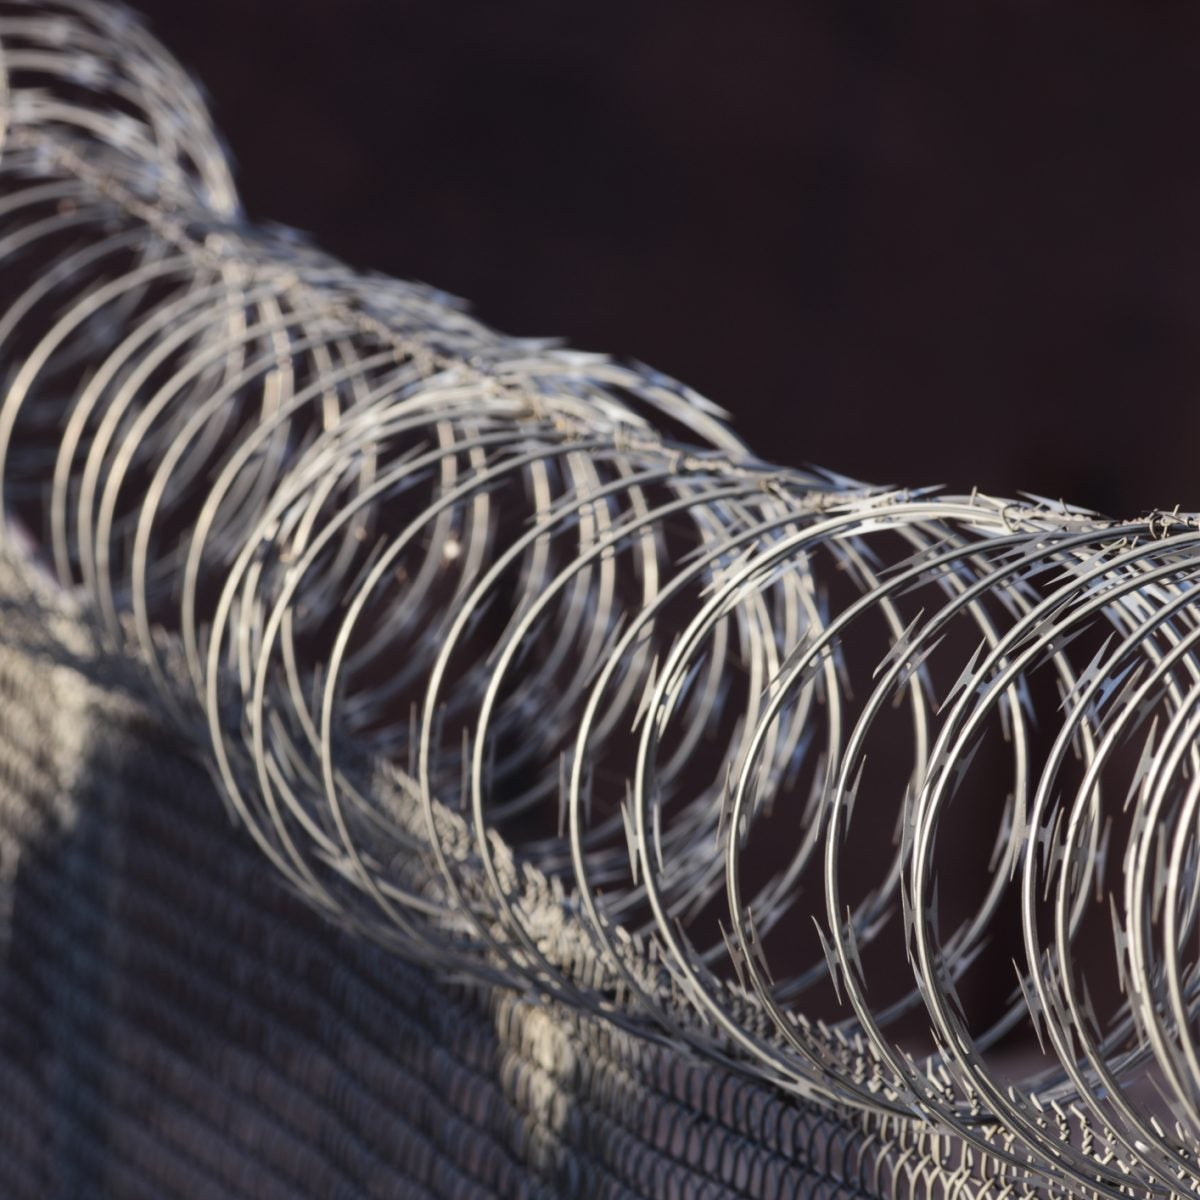 The Mississippi Appendectomies Of Today: Hysterectomies In ICE Detention Centers